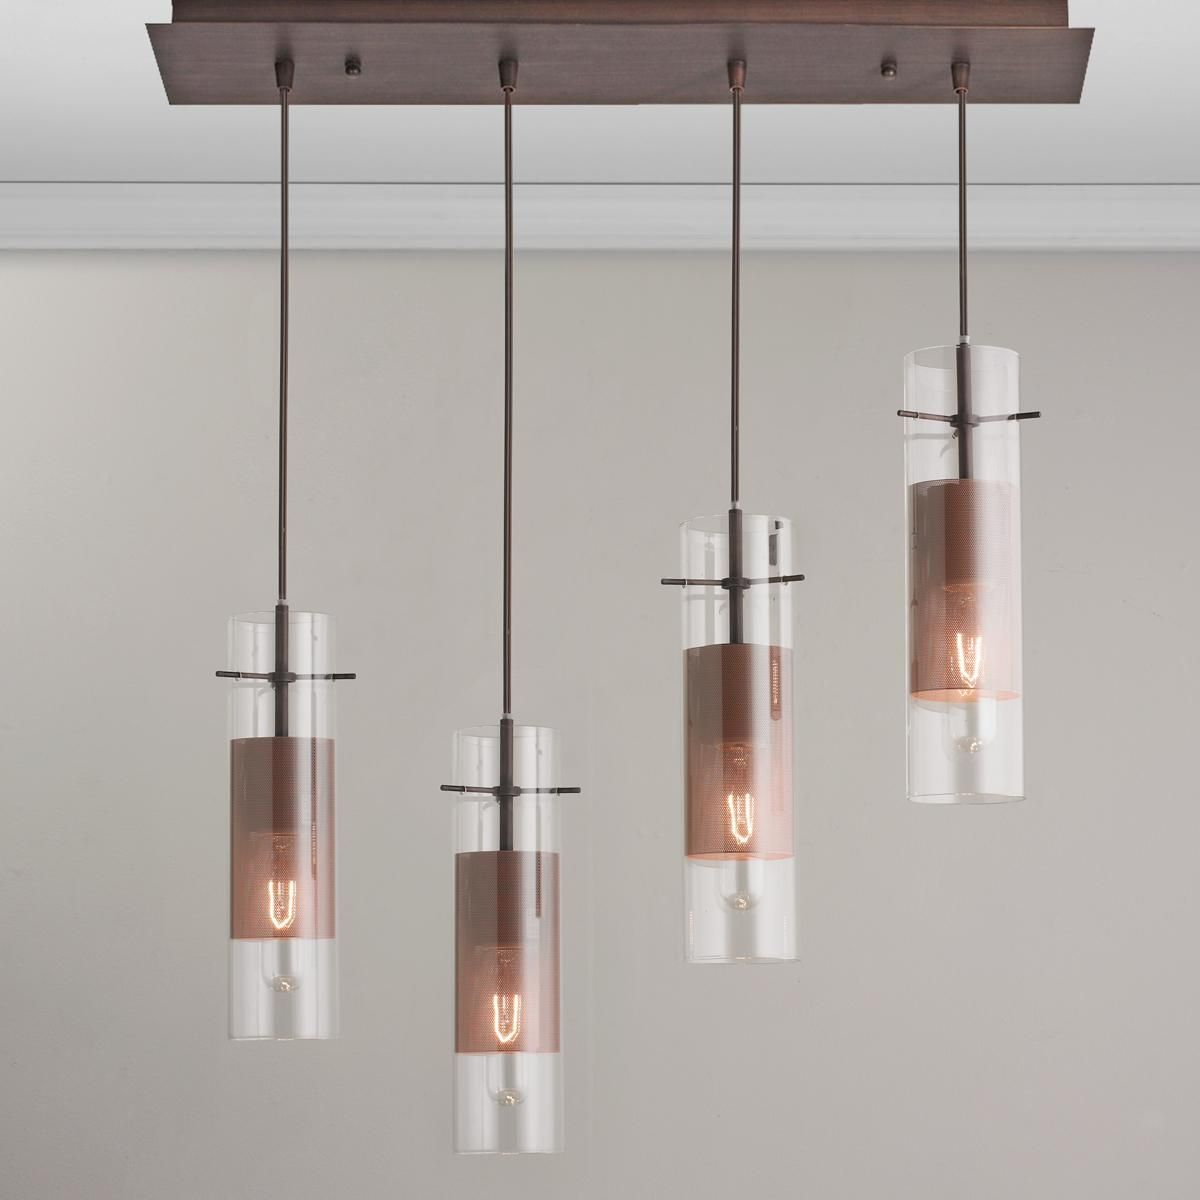 Mesh mini pendant lighting bar this sleek modern lighting bar is mesh mini pendant lighting bar this sleek modern lighting bar is ideal over a kitchen island aloadofball Image collections